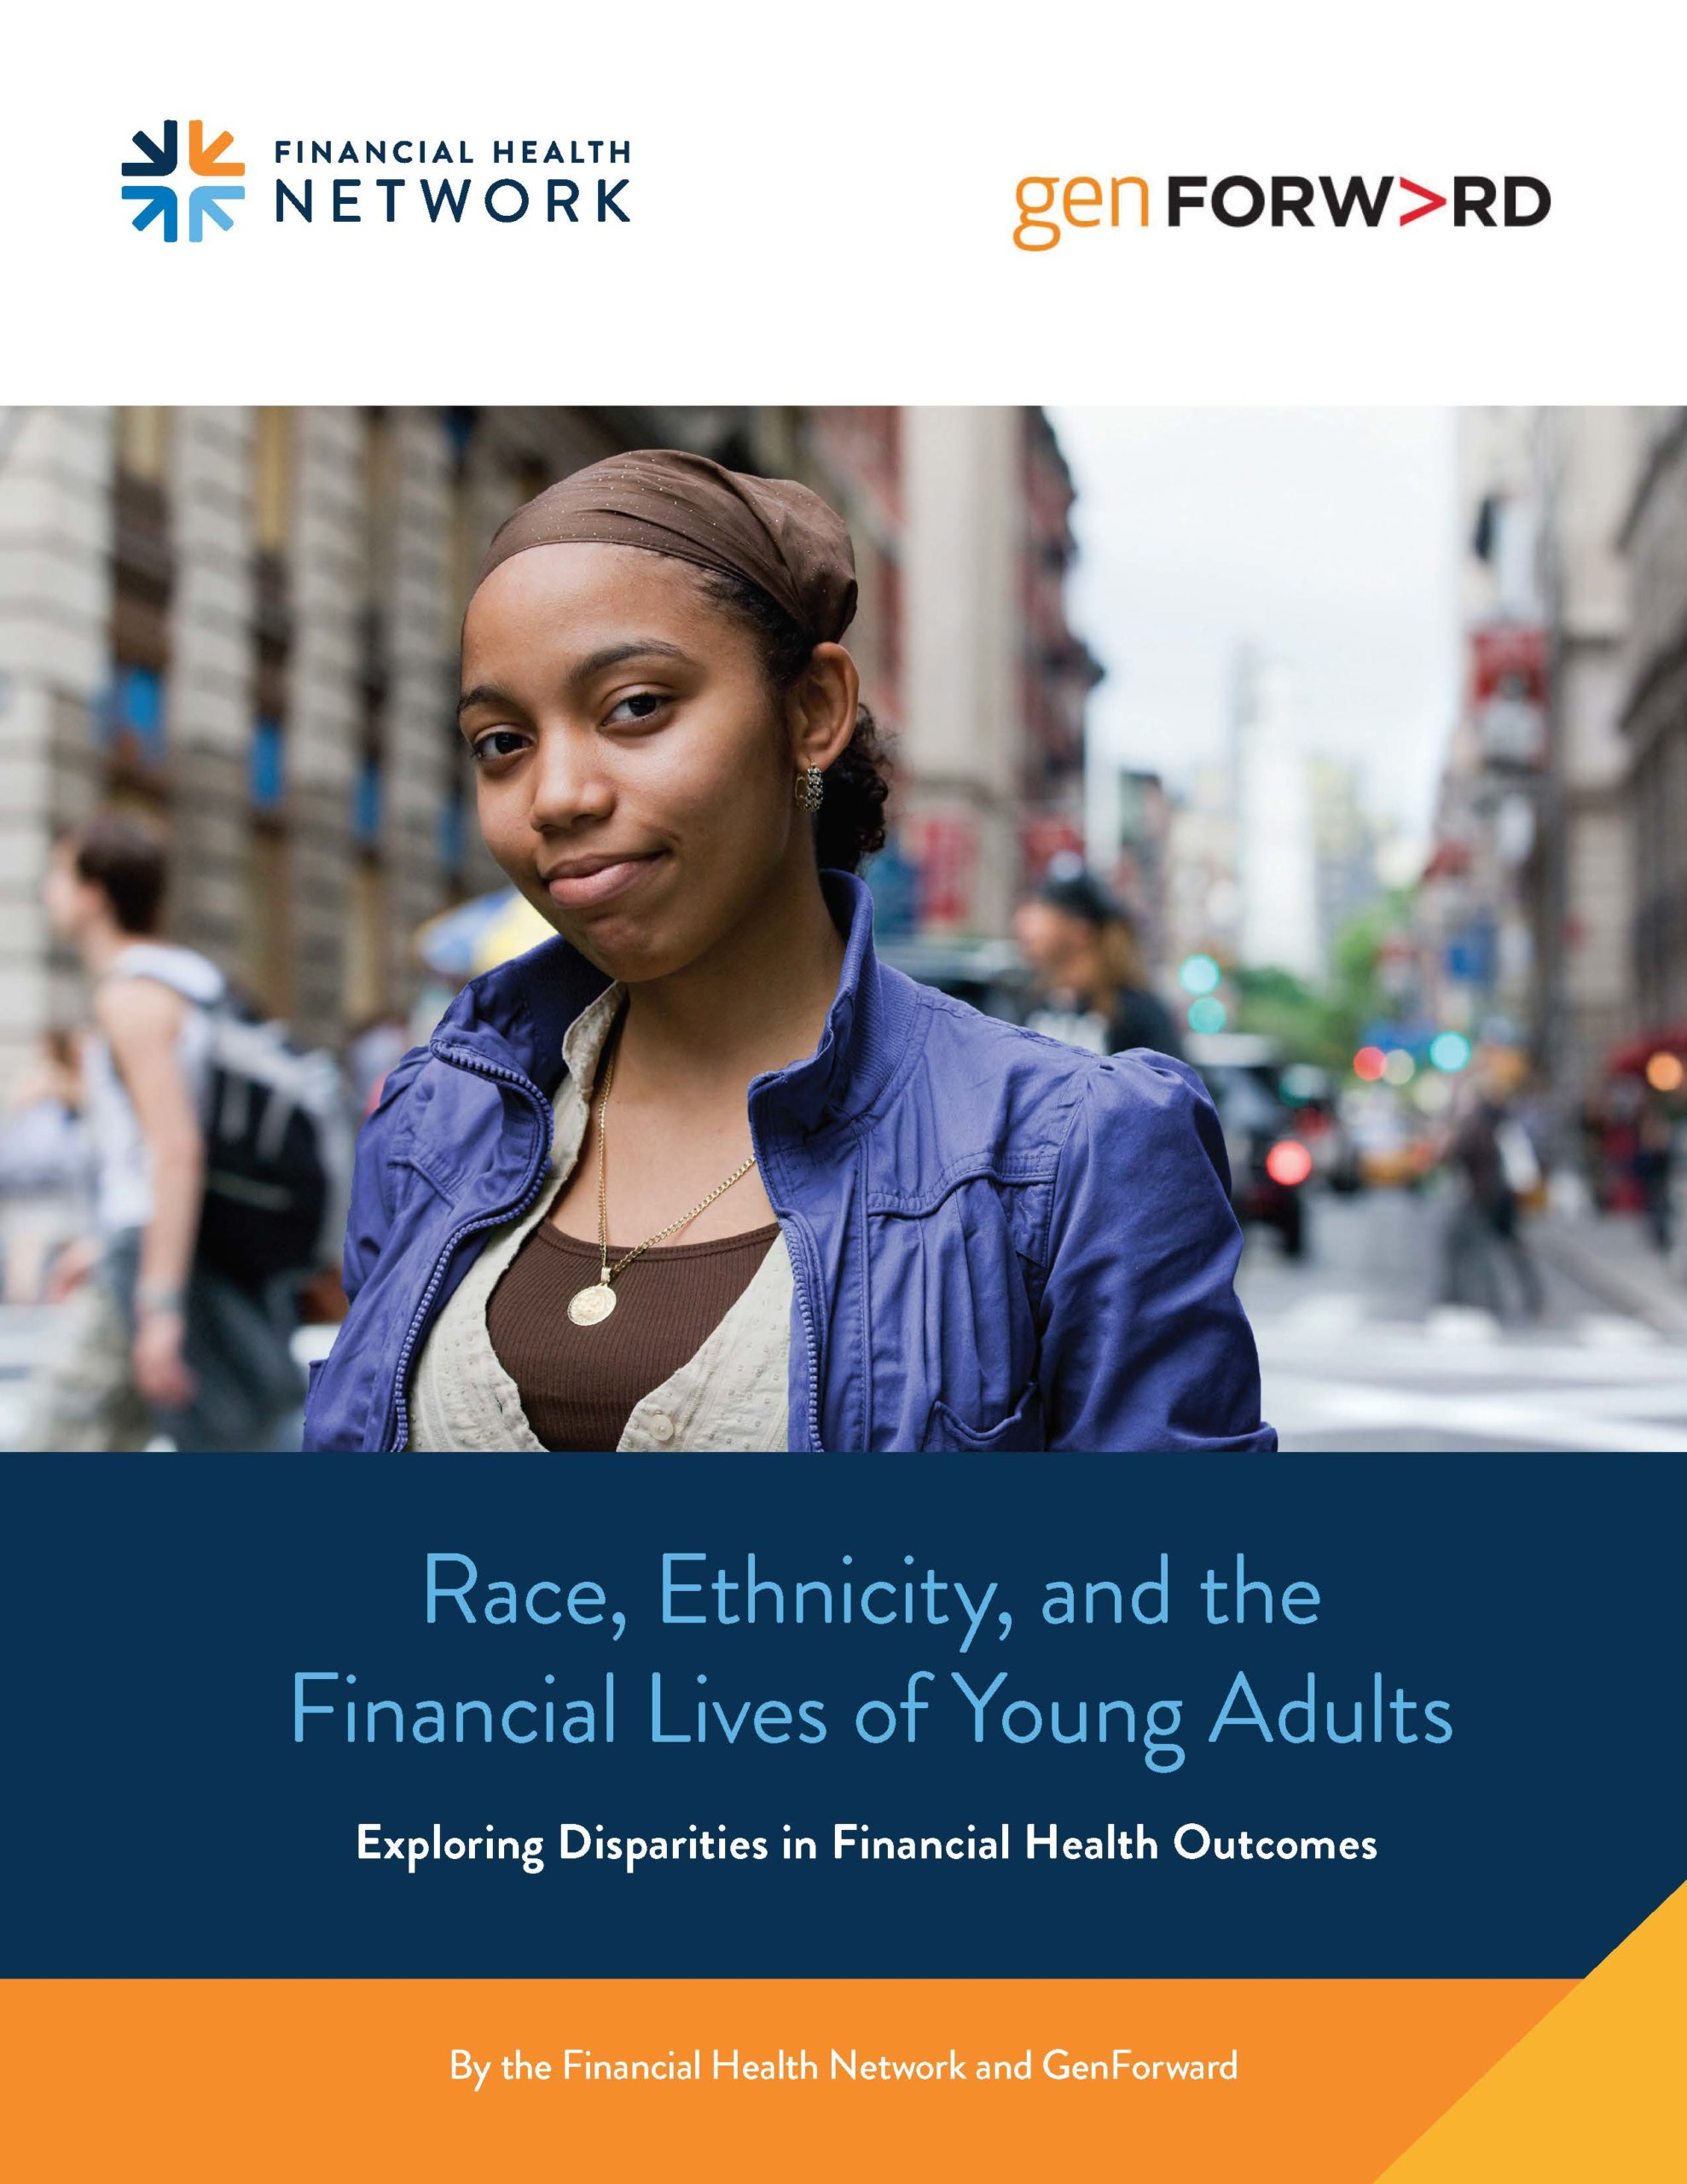 Race, Ethnicity, and the Financial Lives of Young Adults: Report